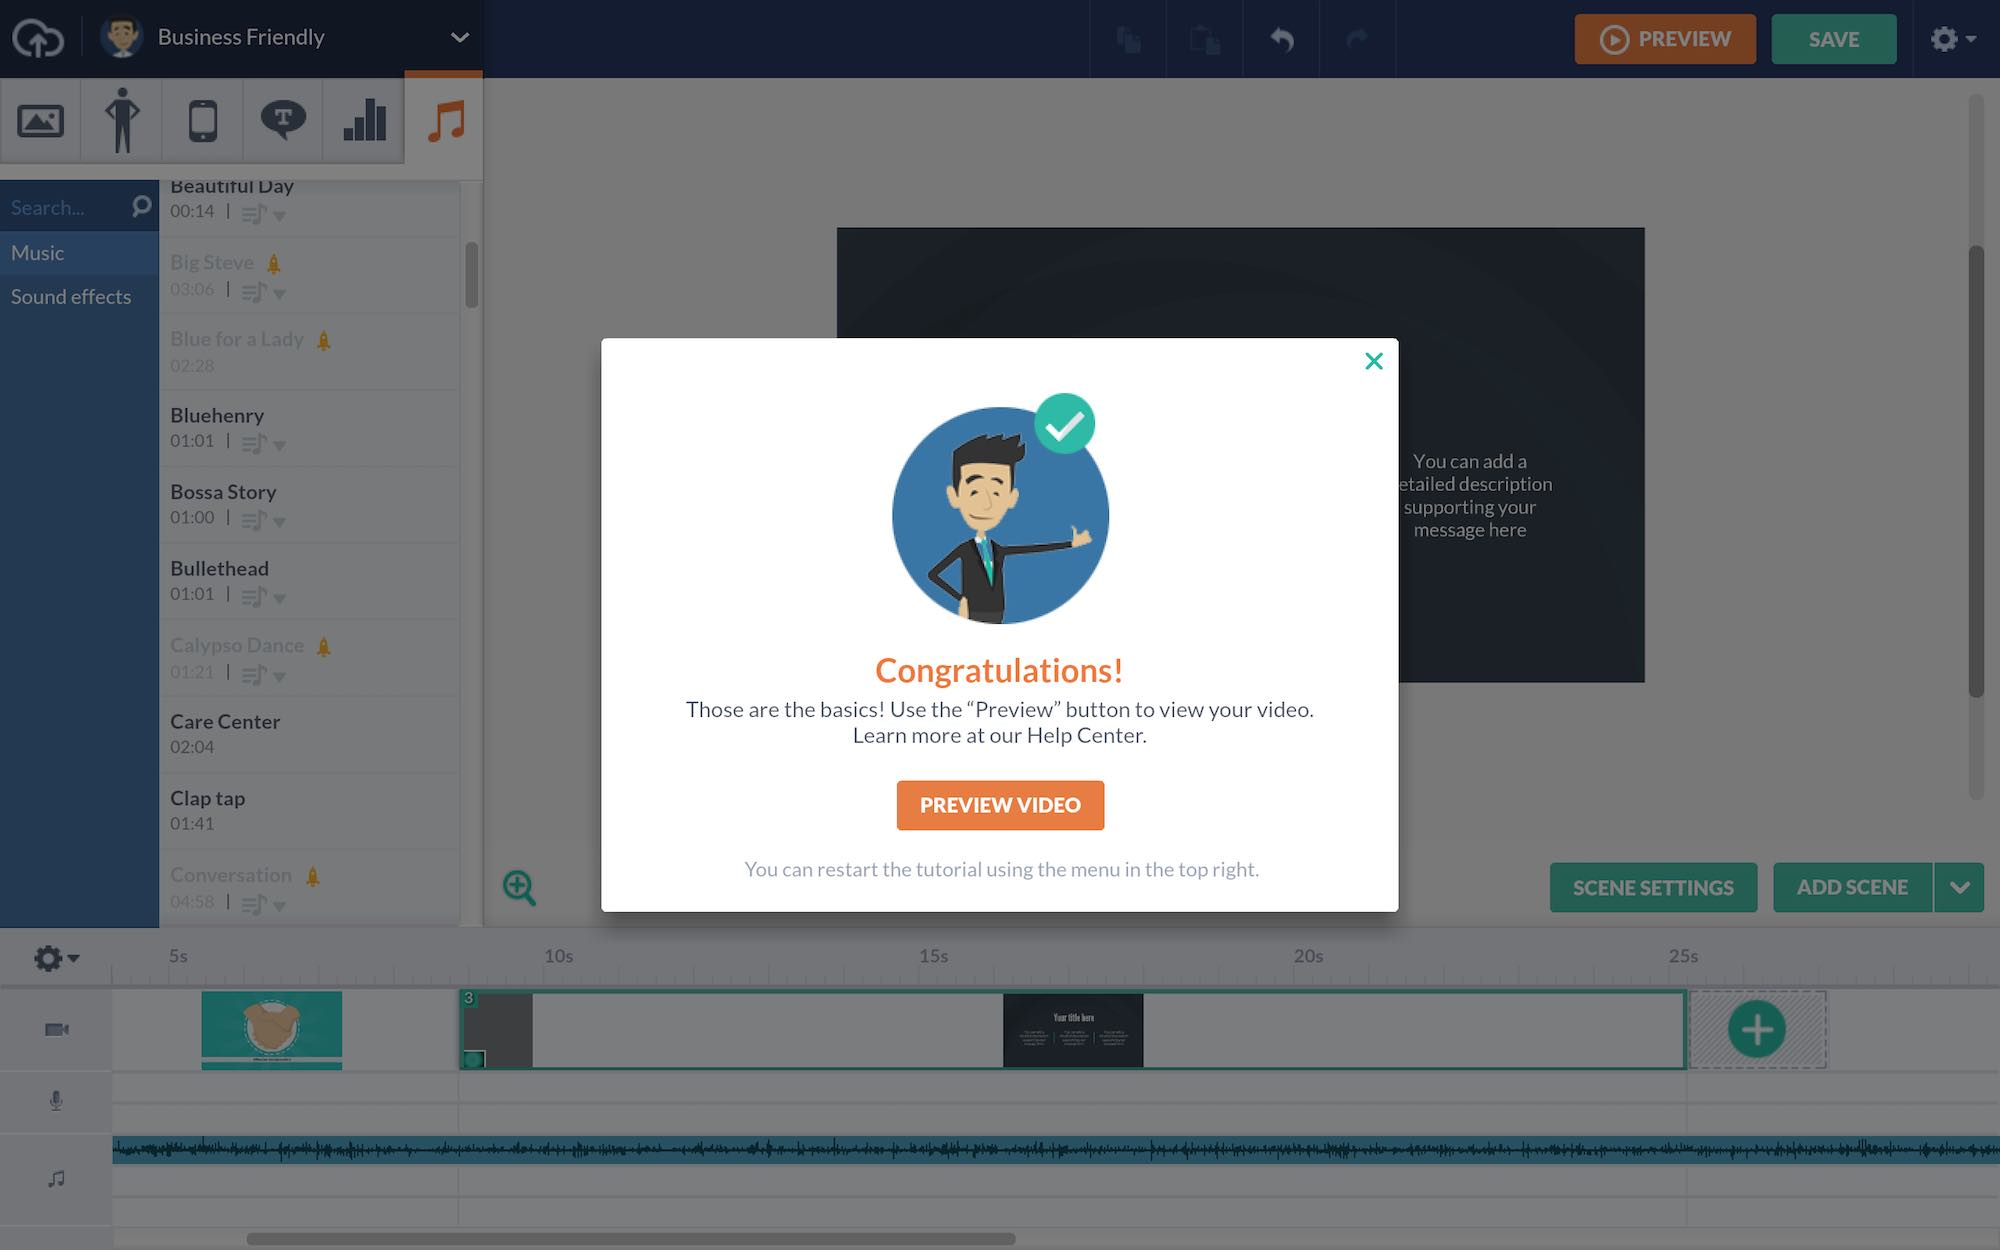 User onboarding example from Vyond congratulates users with a modal for completing task. Reward users using UX